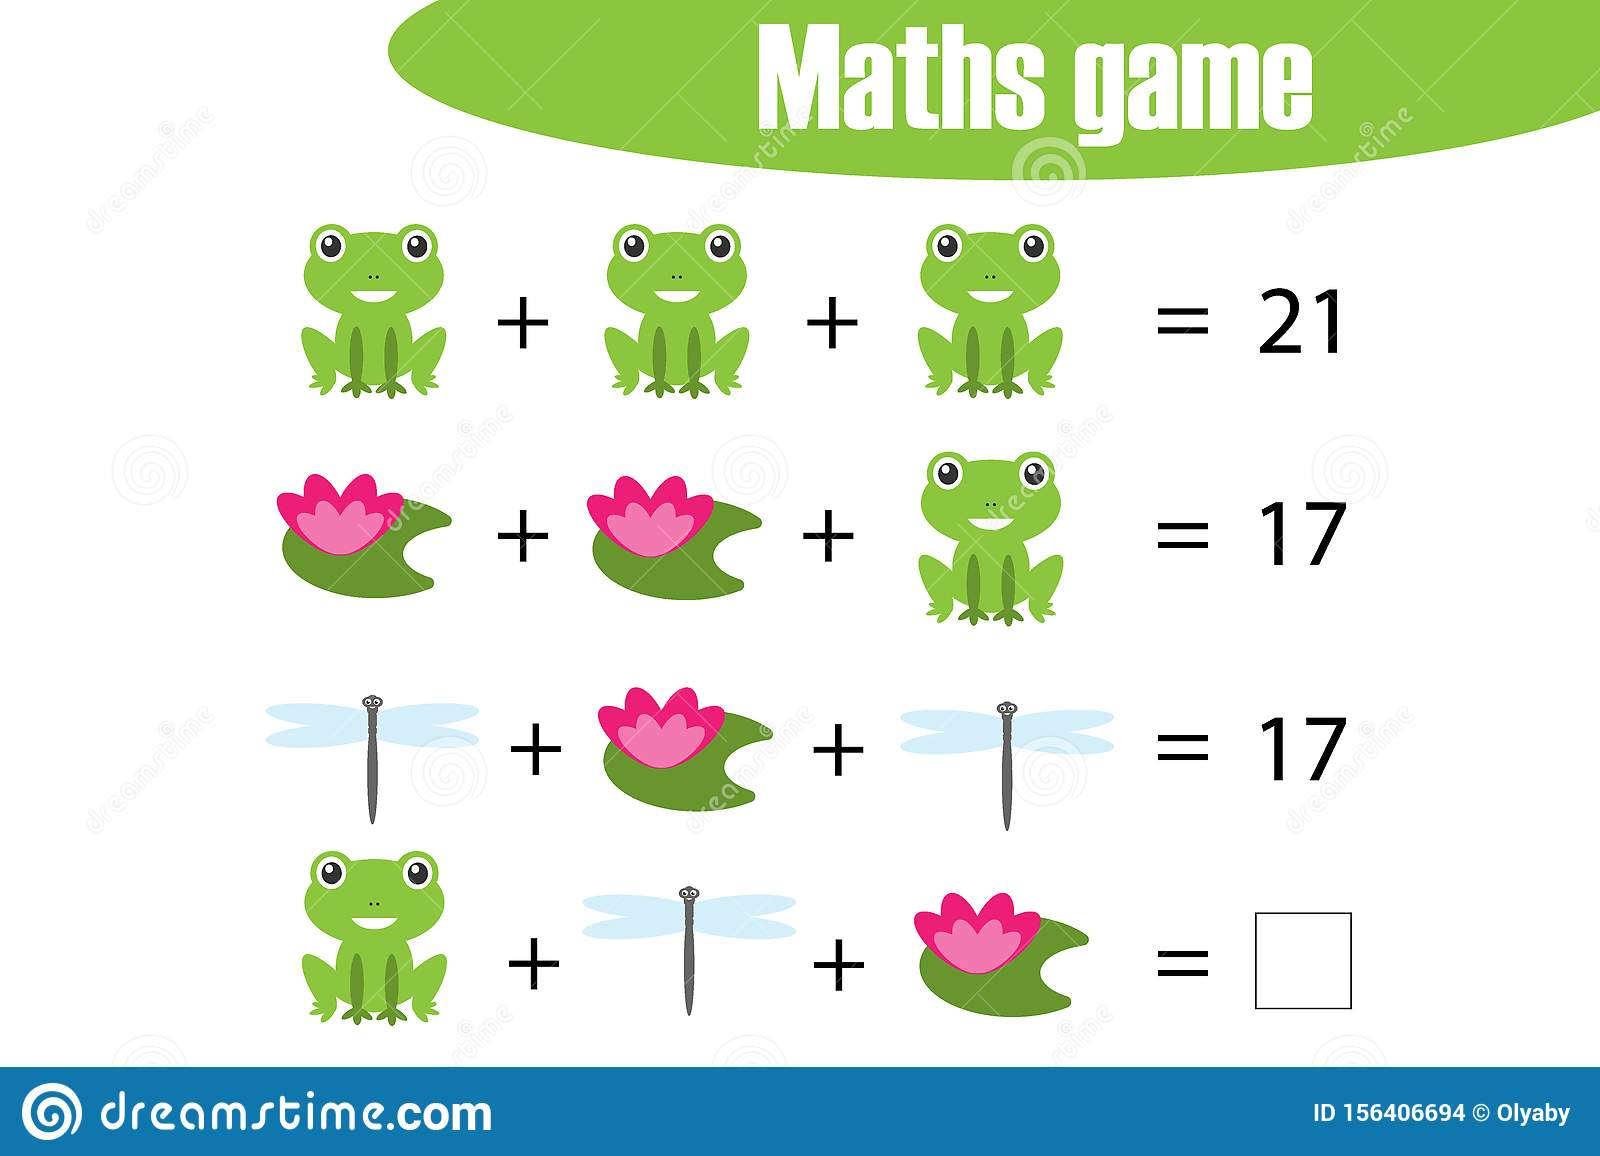 Maths Game With Pictures Of Pond Life For Children Middle